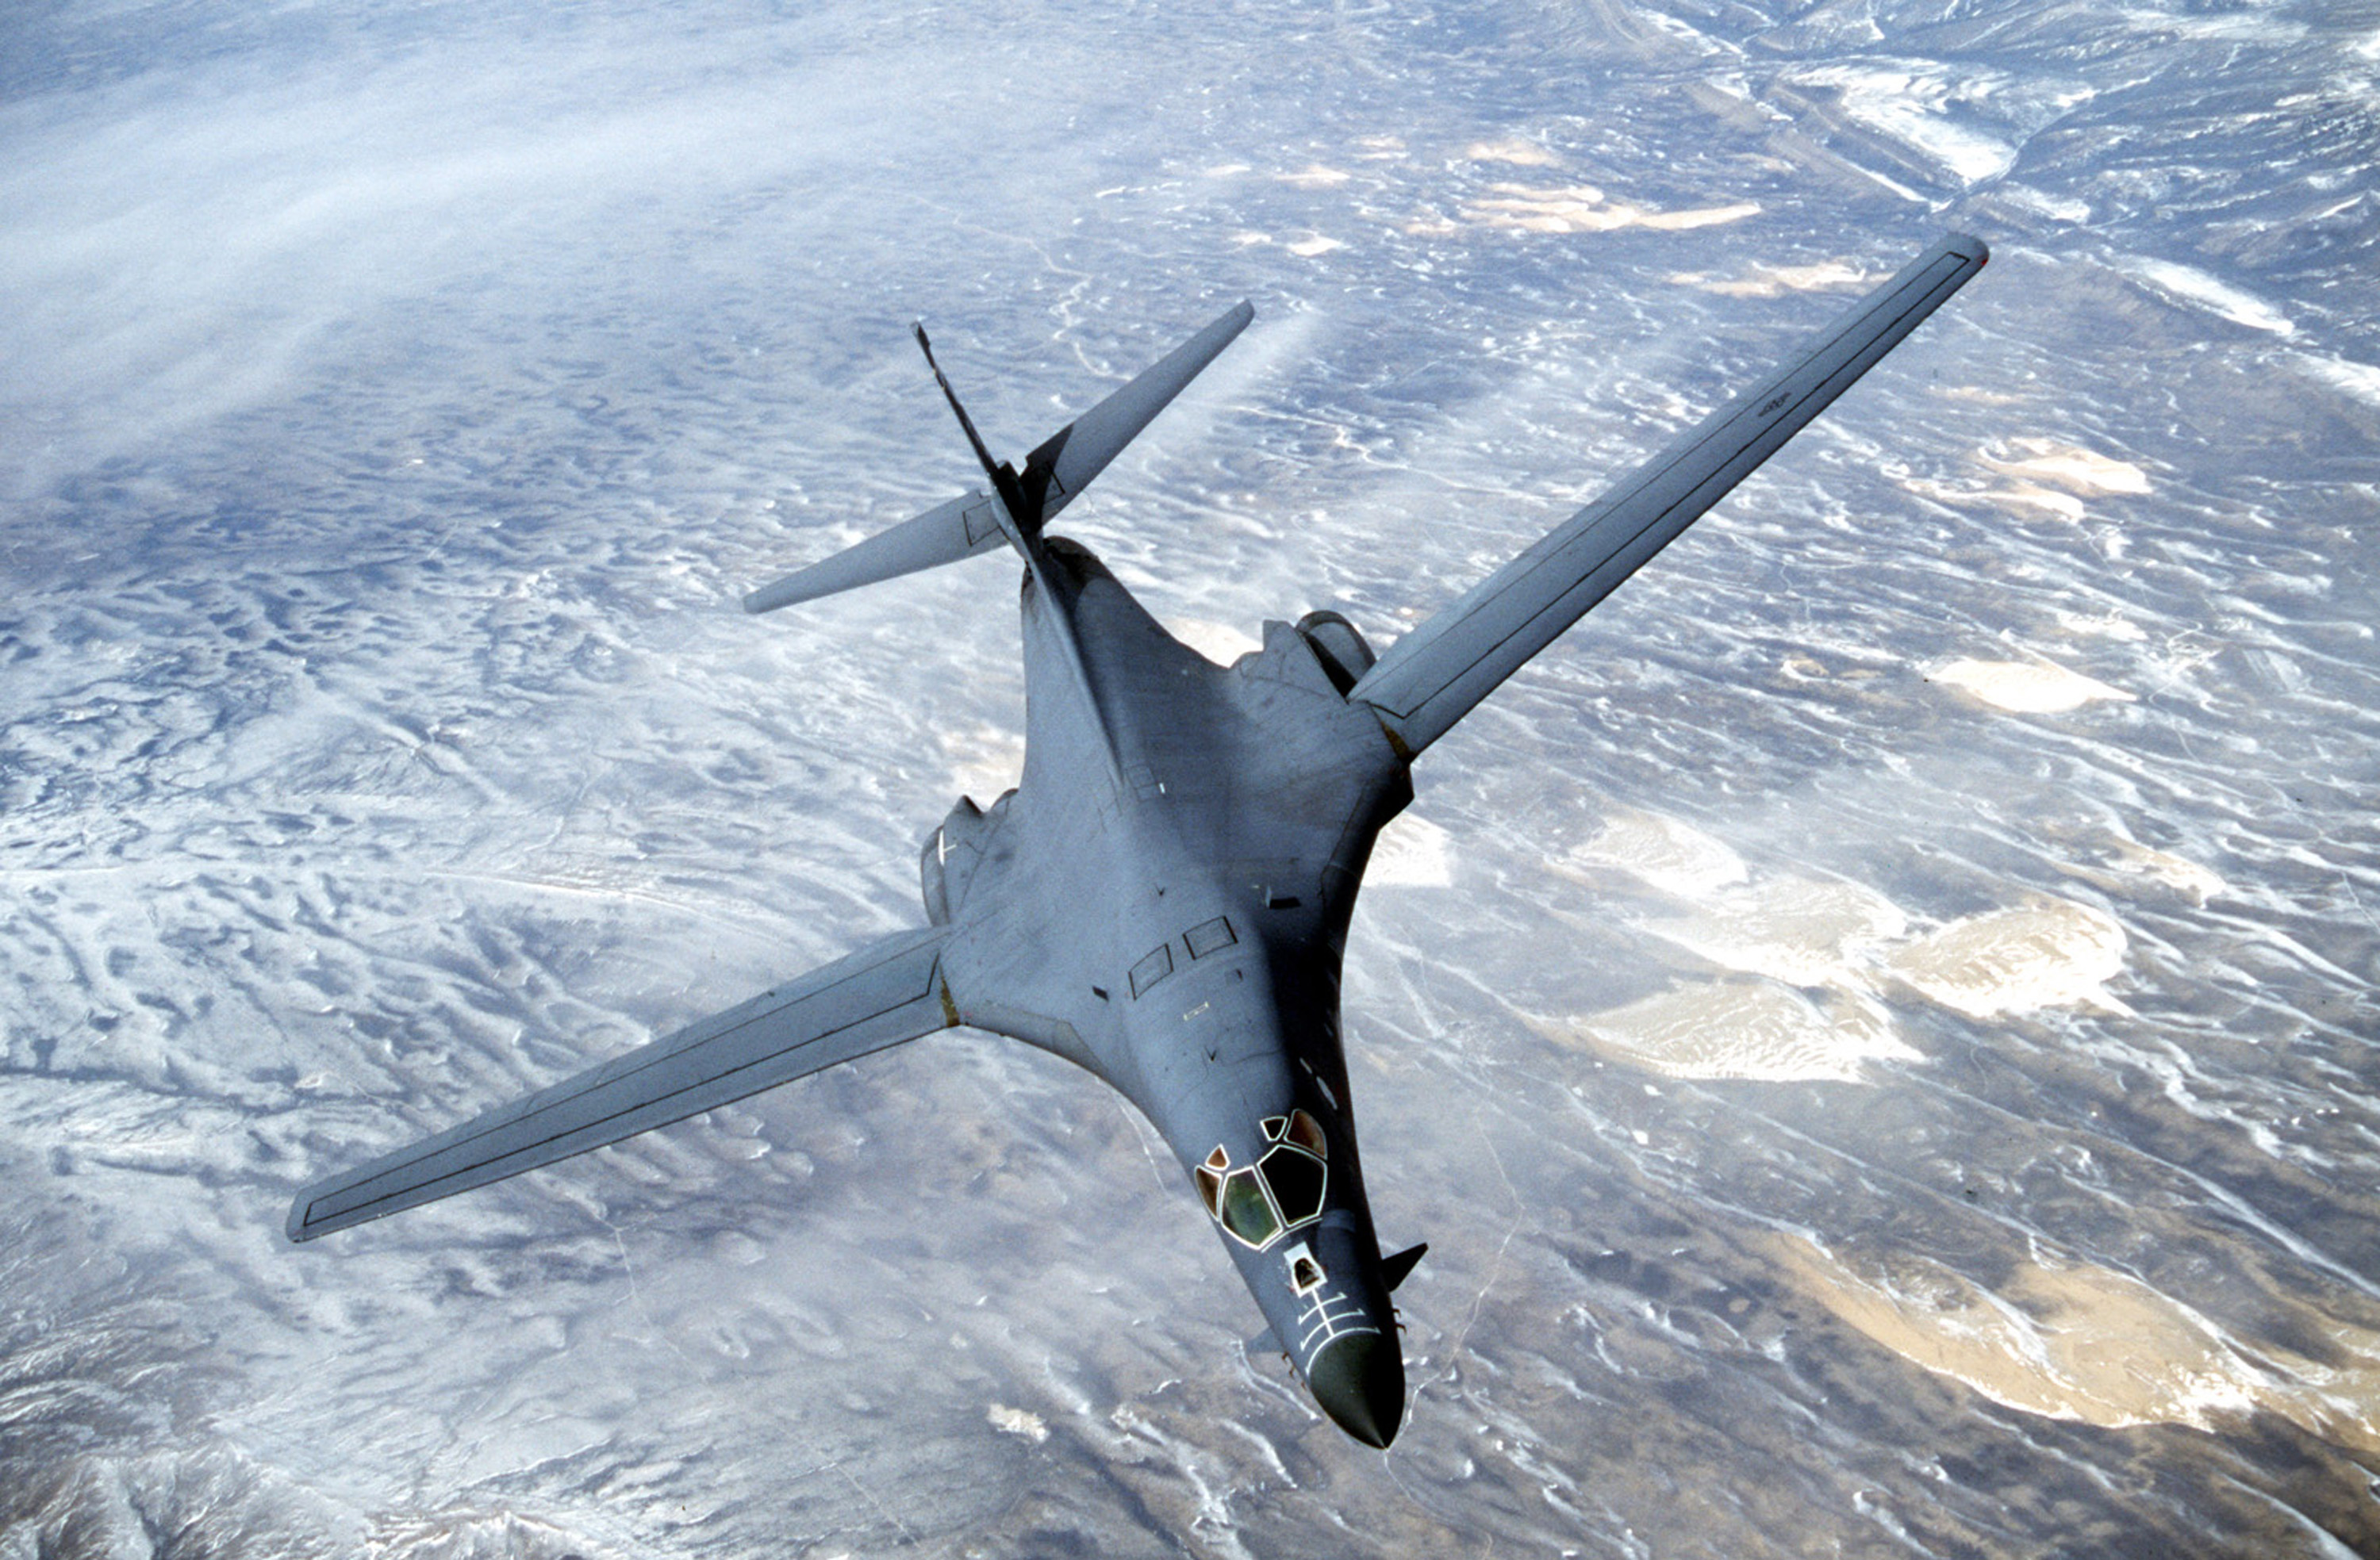 A B-1 bomber over Afghanistan.